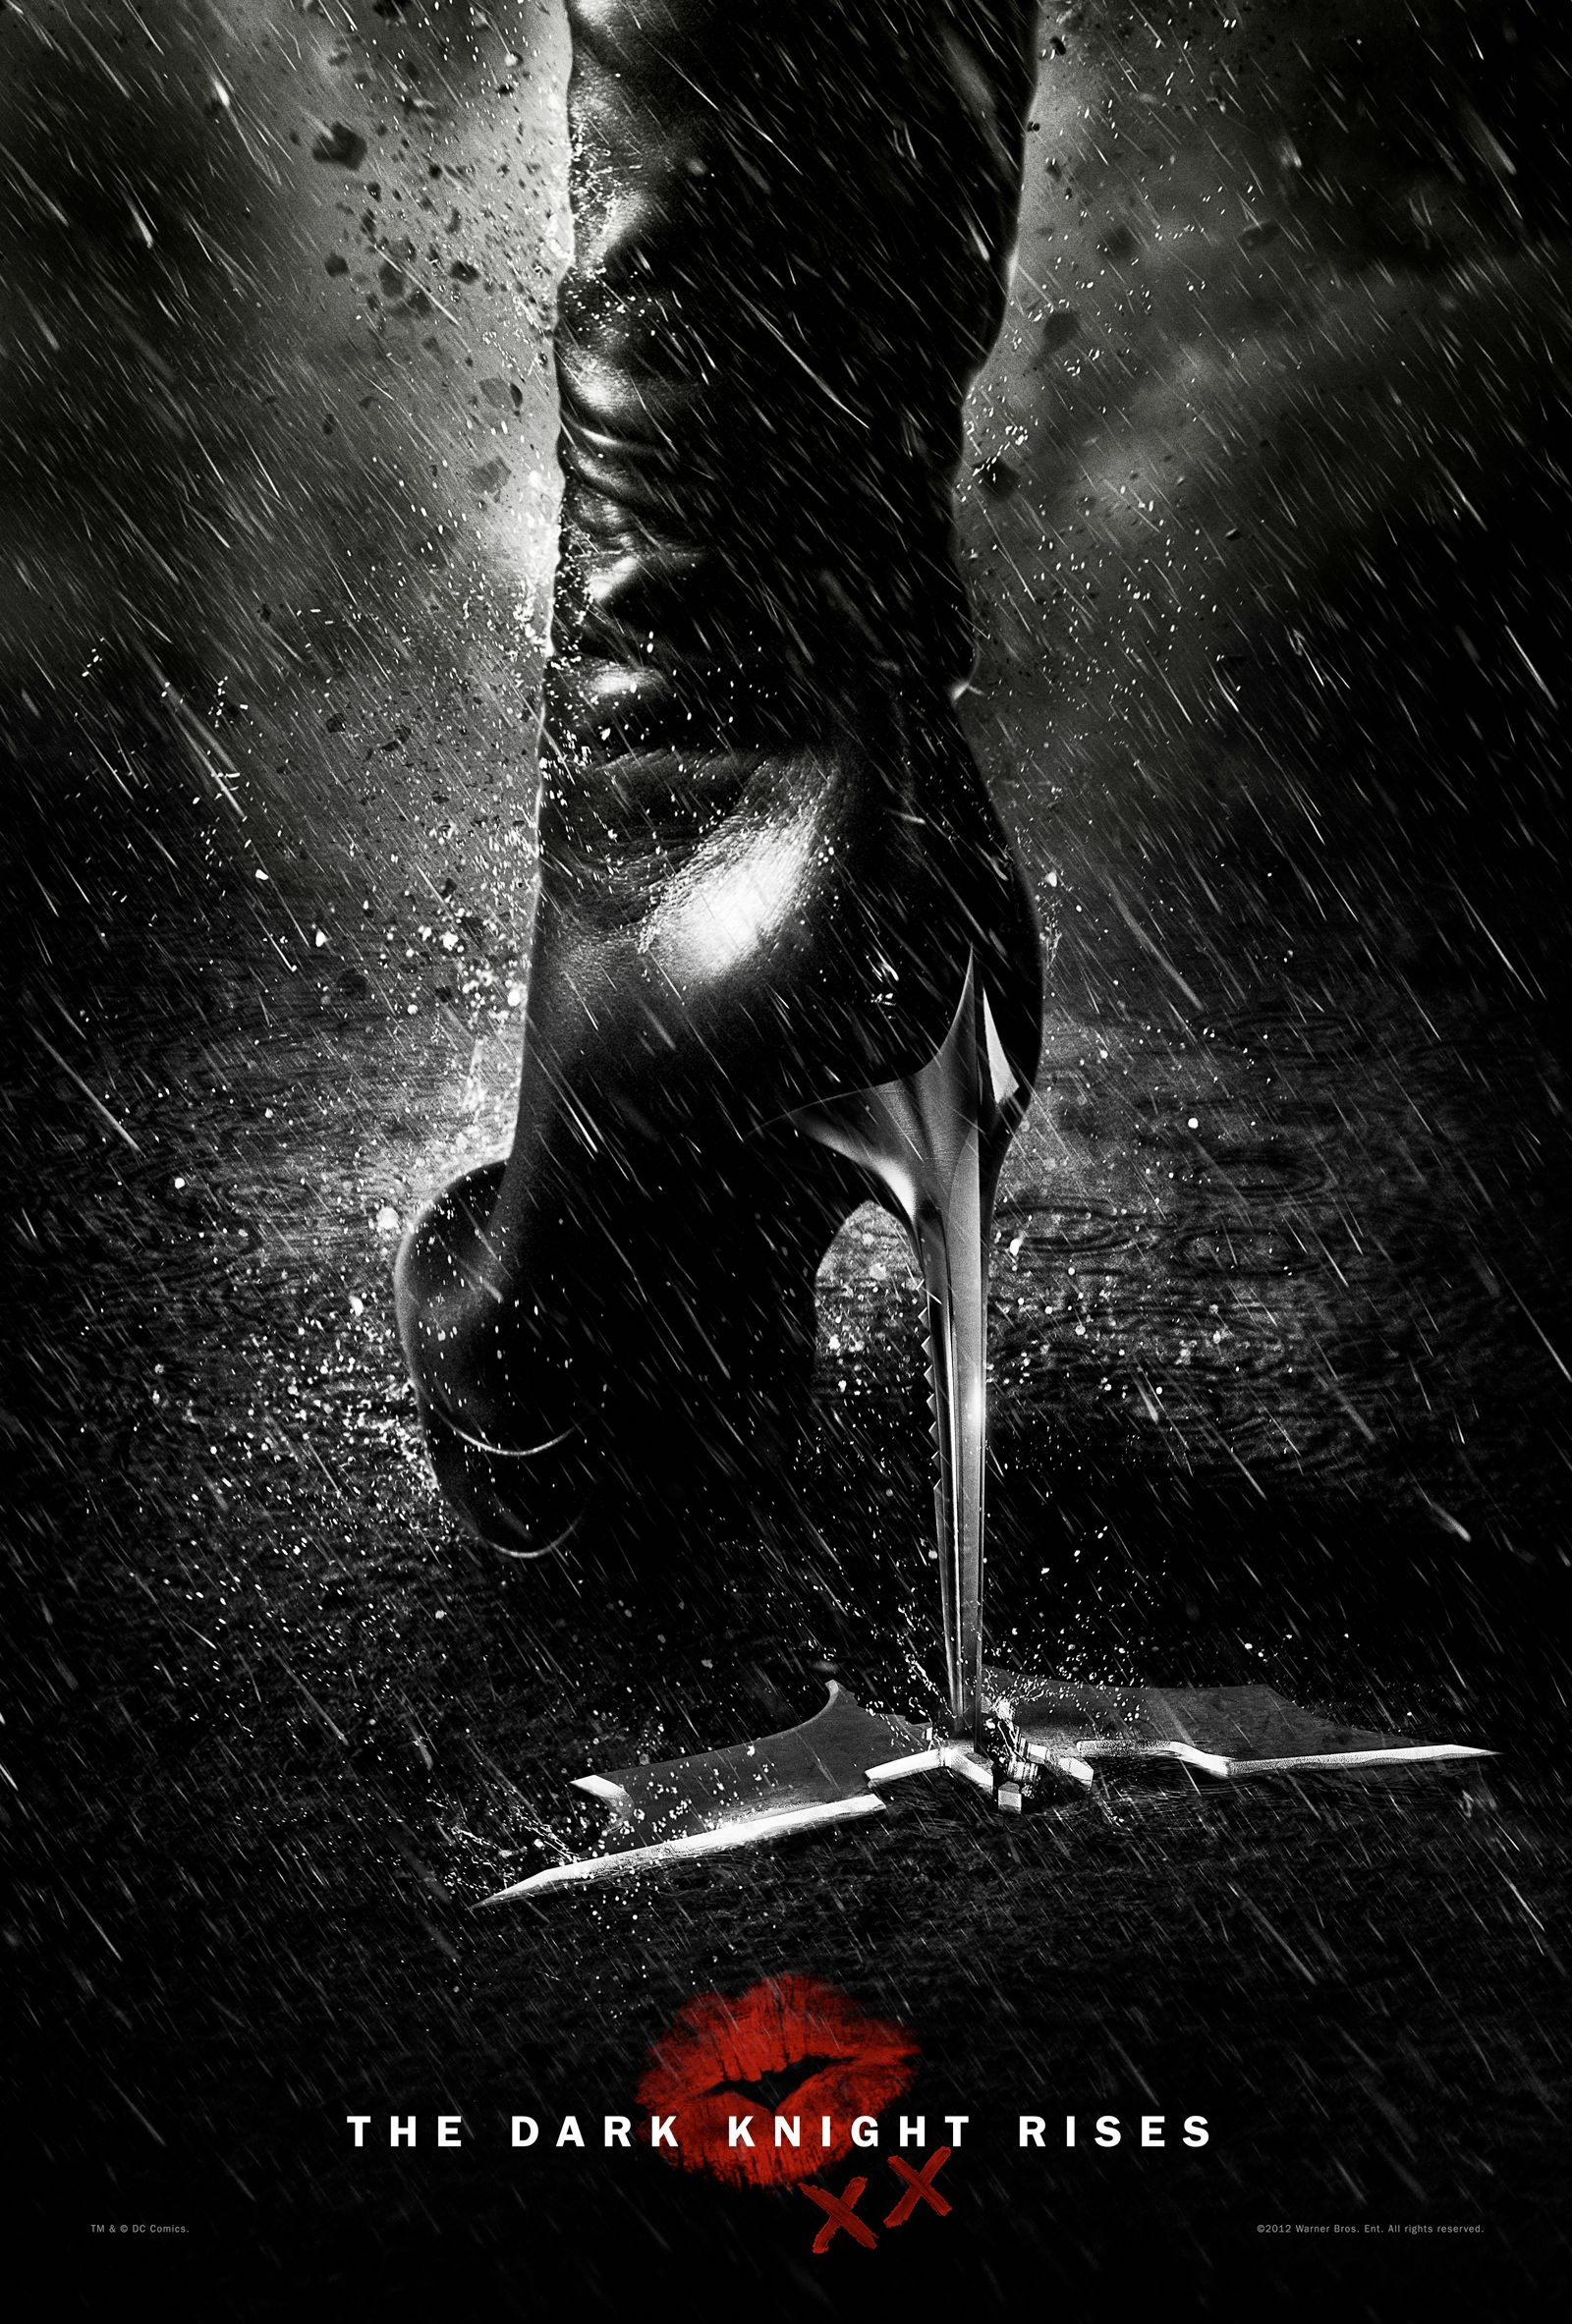 THE DARK KNIGHT RISES Images Bane, Batman, Catwoman | Collider